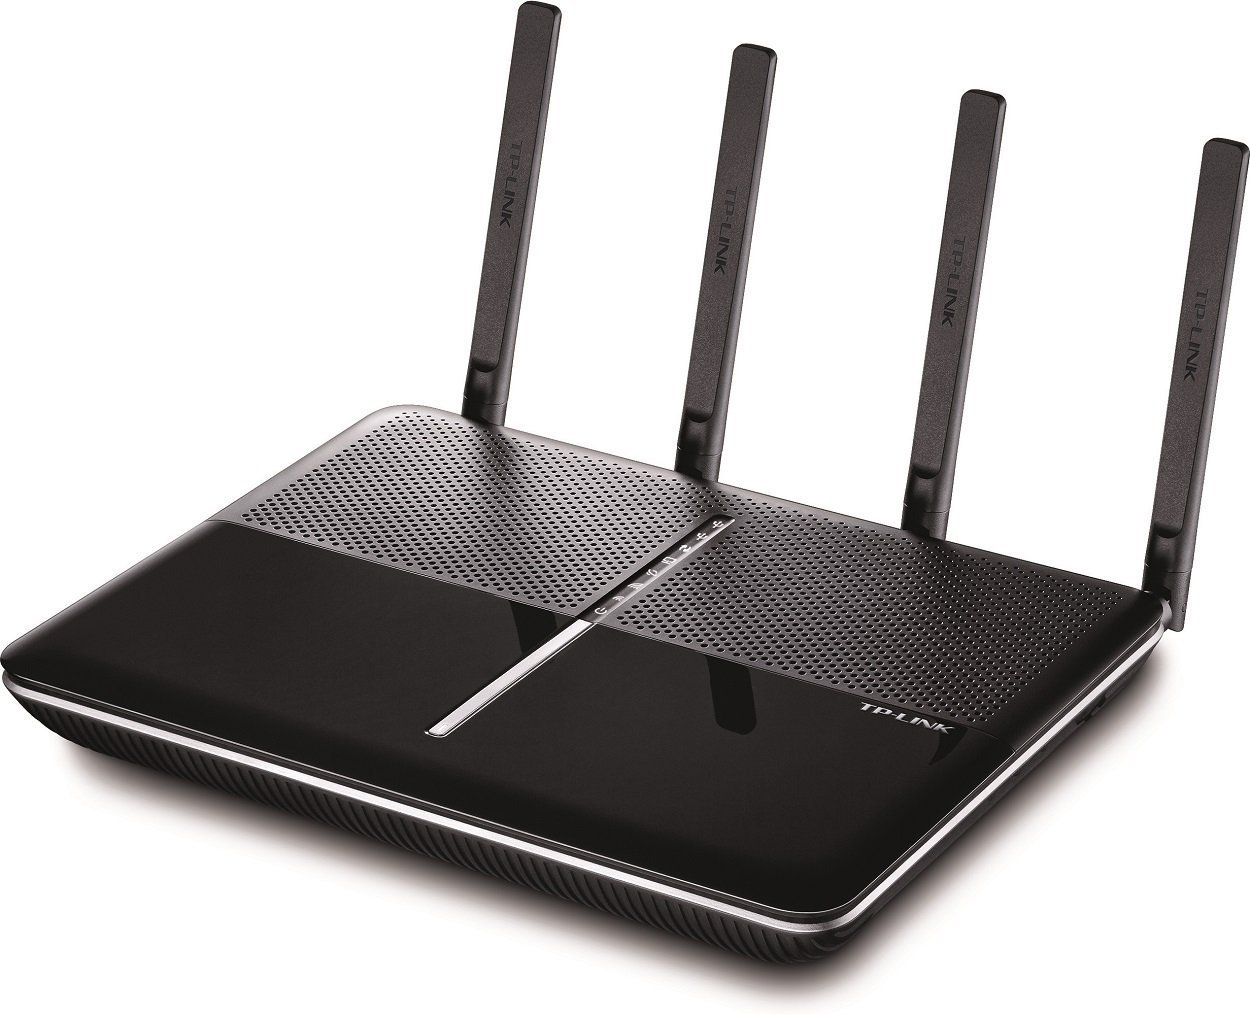 TP-Link AC2600 Wireless Wi-Fi Gigabit Router with 4-Stream Technology (Archer C2600)